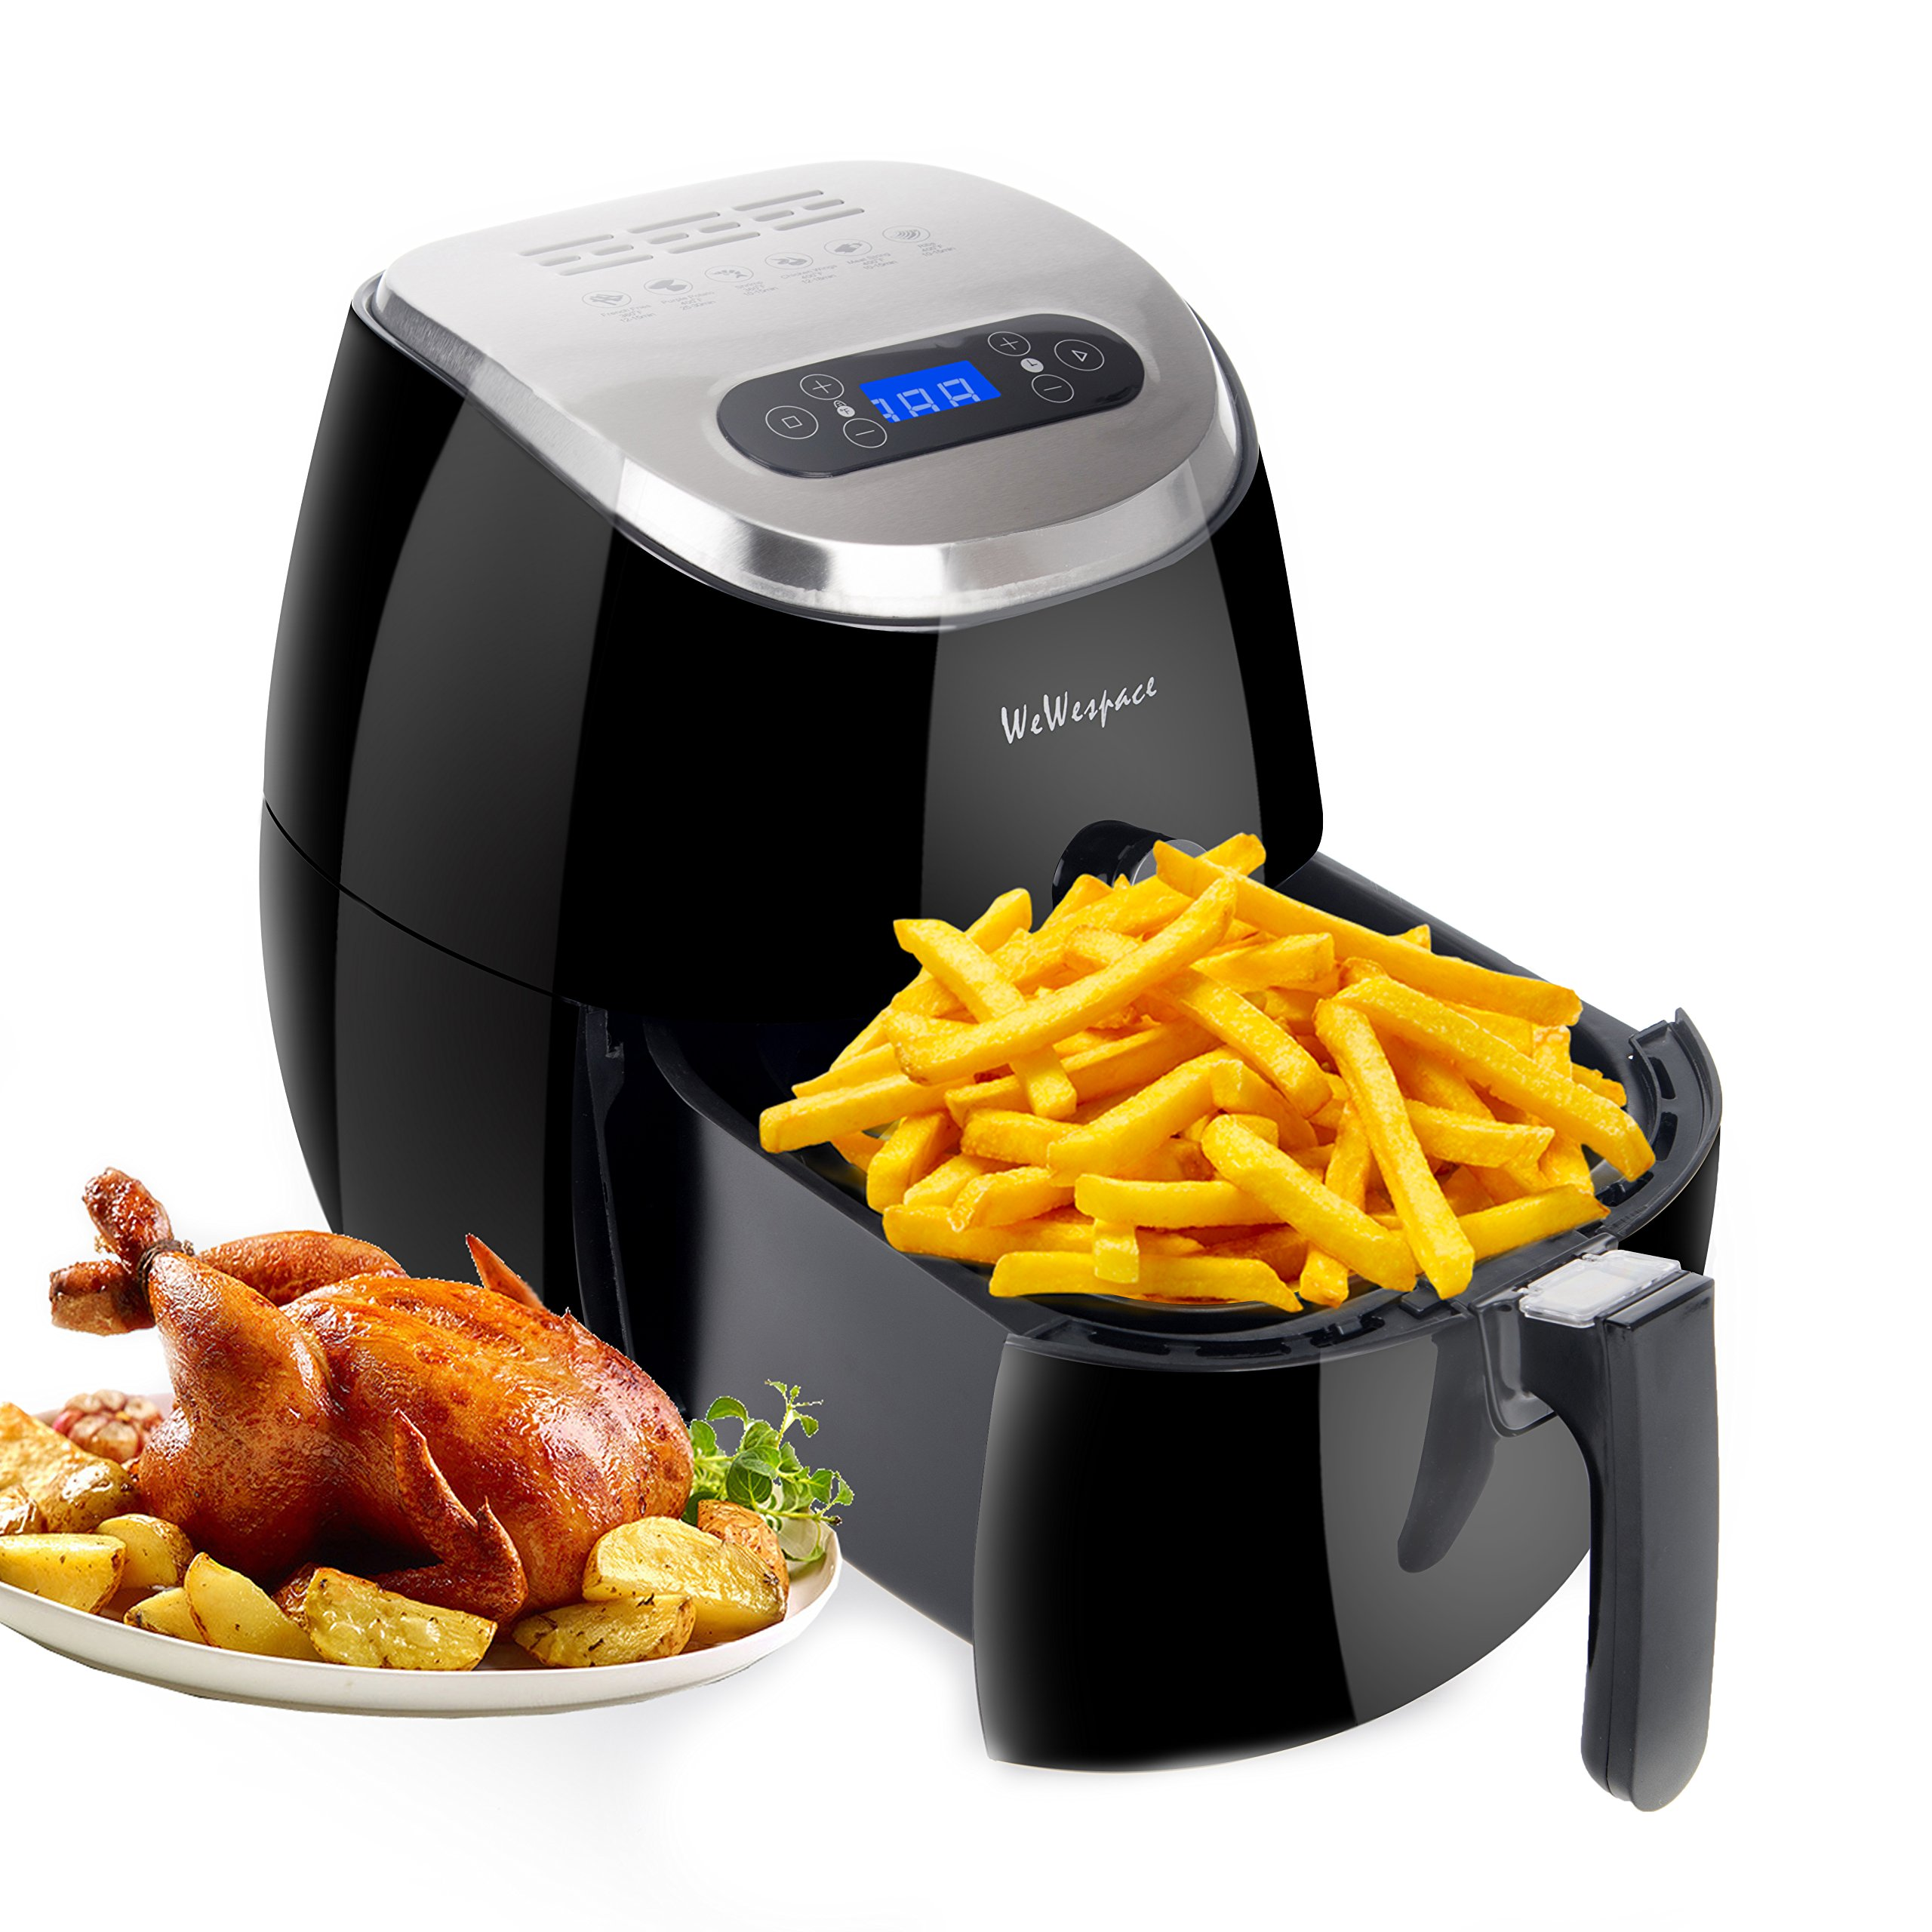 WeW Electric Digital Air fryer 3.7 Quarts with LED Touch Display,Oil Free,Black - Dishwasher Safe - Auto Shut off & Timer